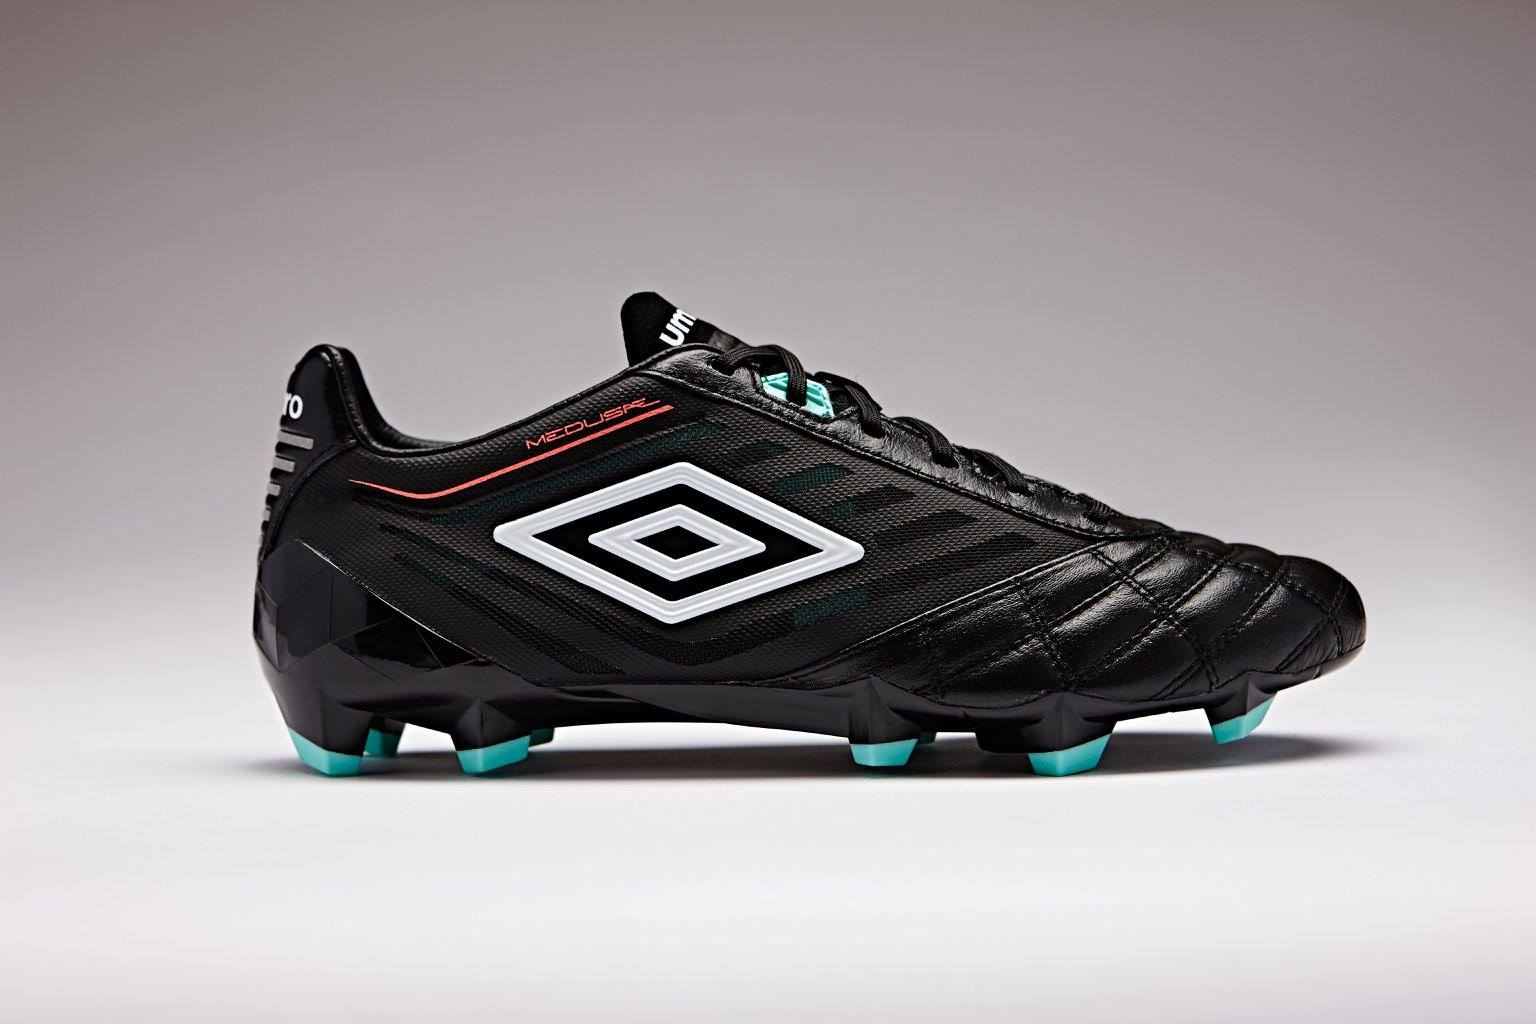 Umbro Unveils Two Classy Colorways For All New Medusae